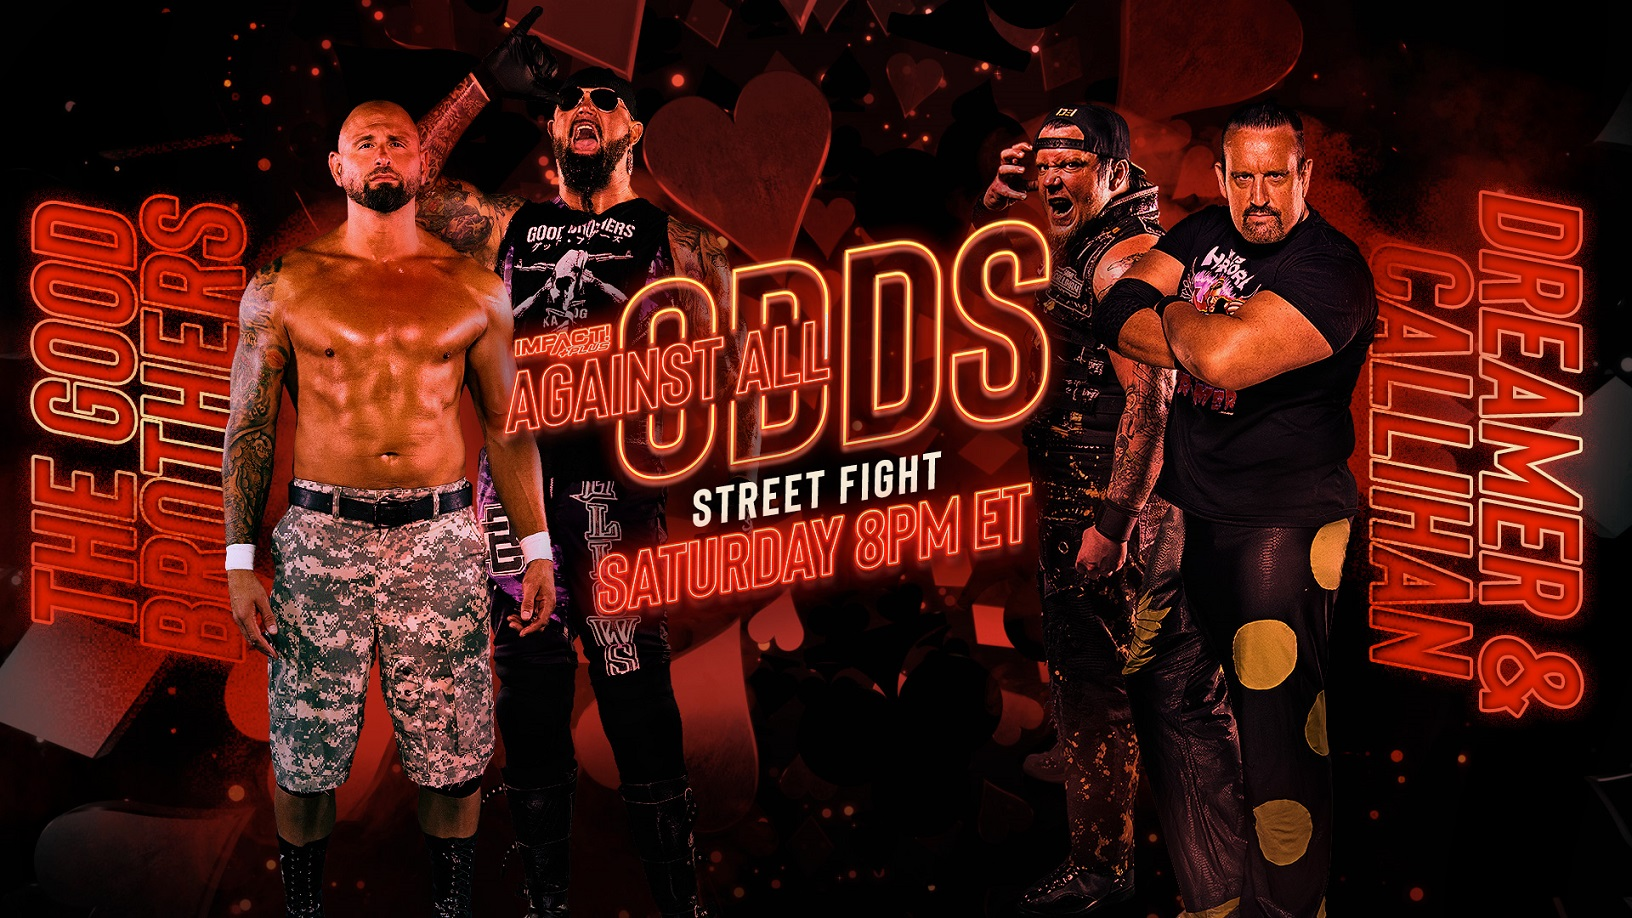 Street Fight & Knockouts Warfare Round Out Card for Against All Odds – IMPACT Wrestling